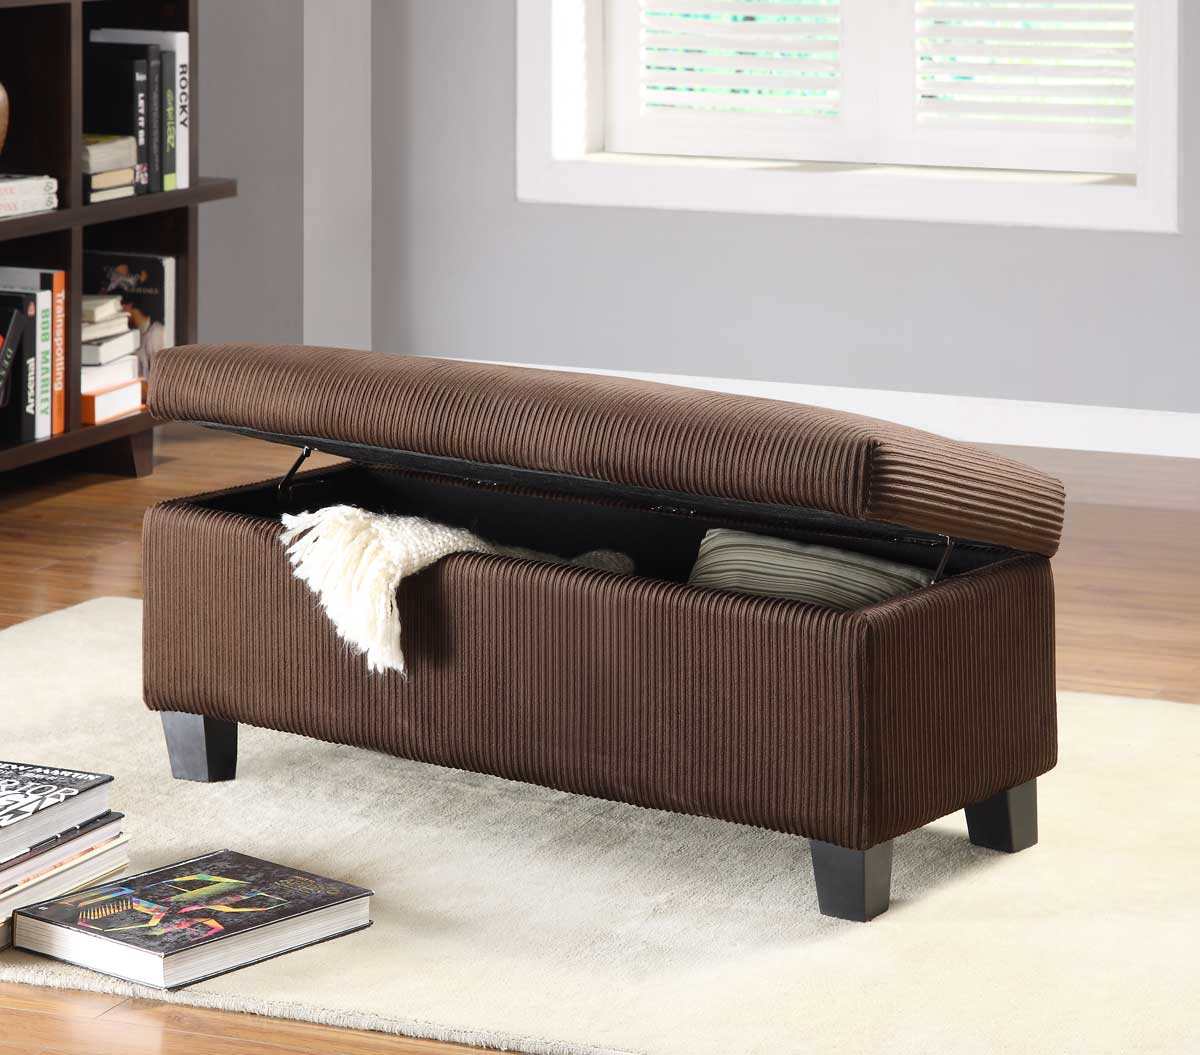 Homelegance Clair Lift Top Storage Bench Ottoman   Chocolate Corduroy